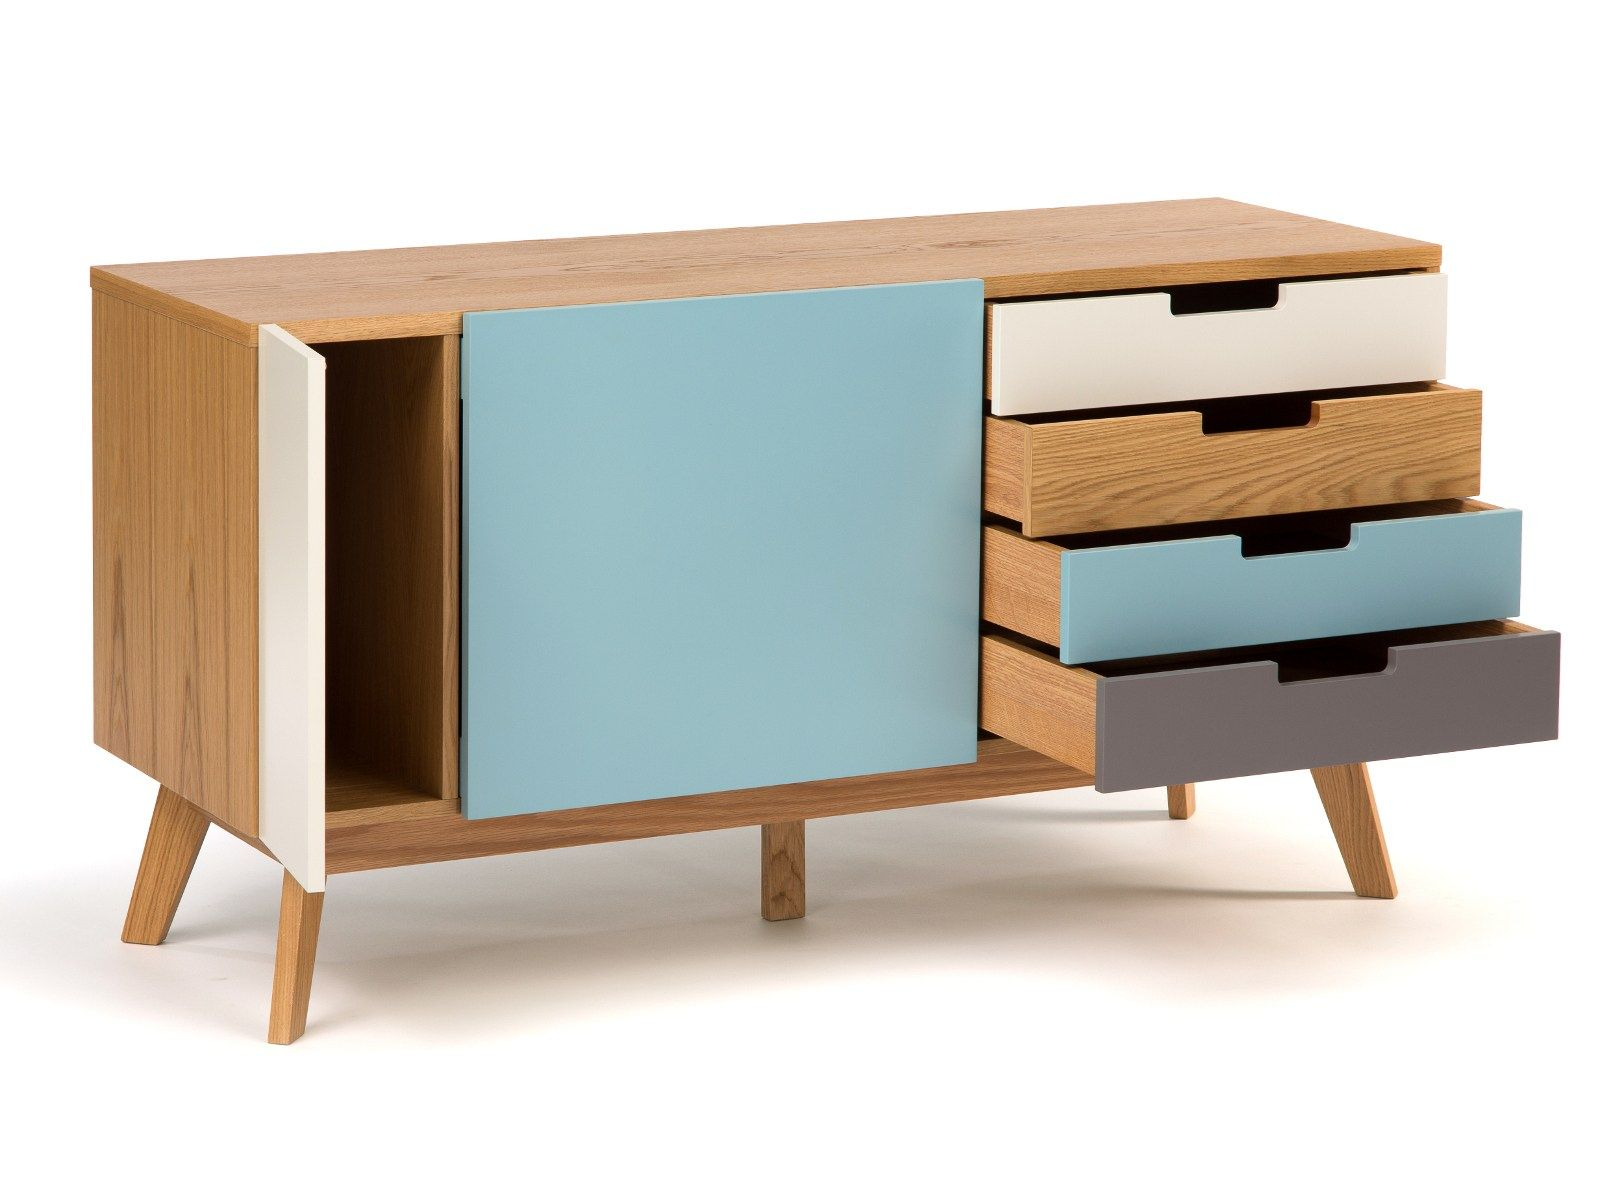 CHASER Sideboard by Woodman